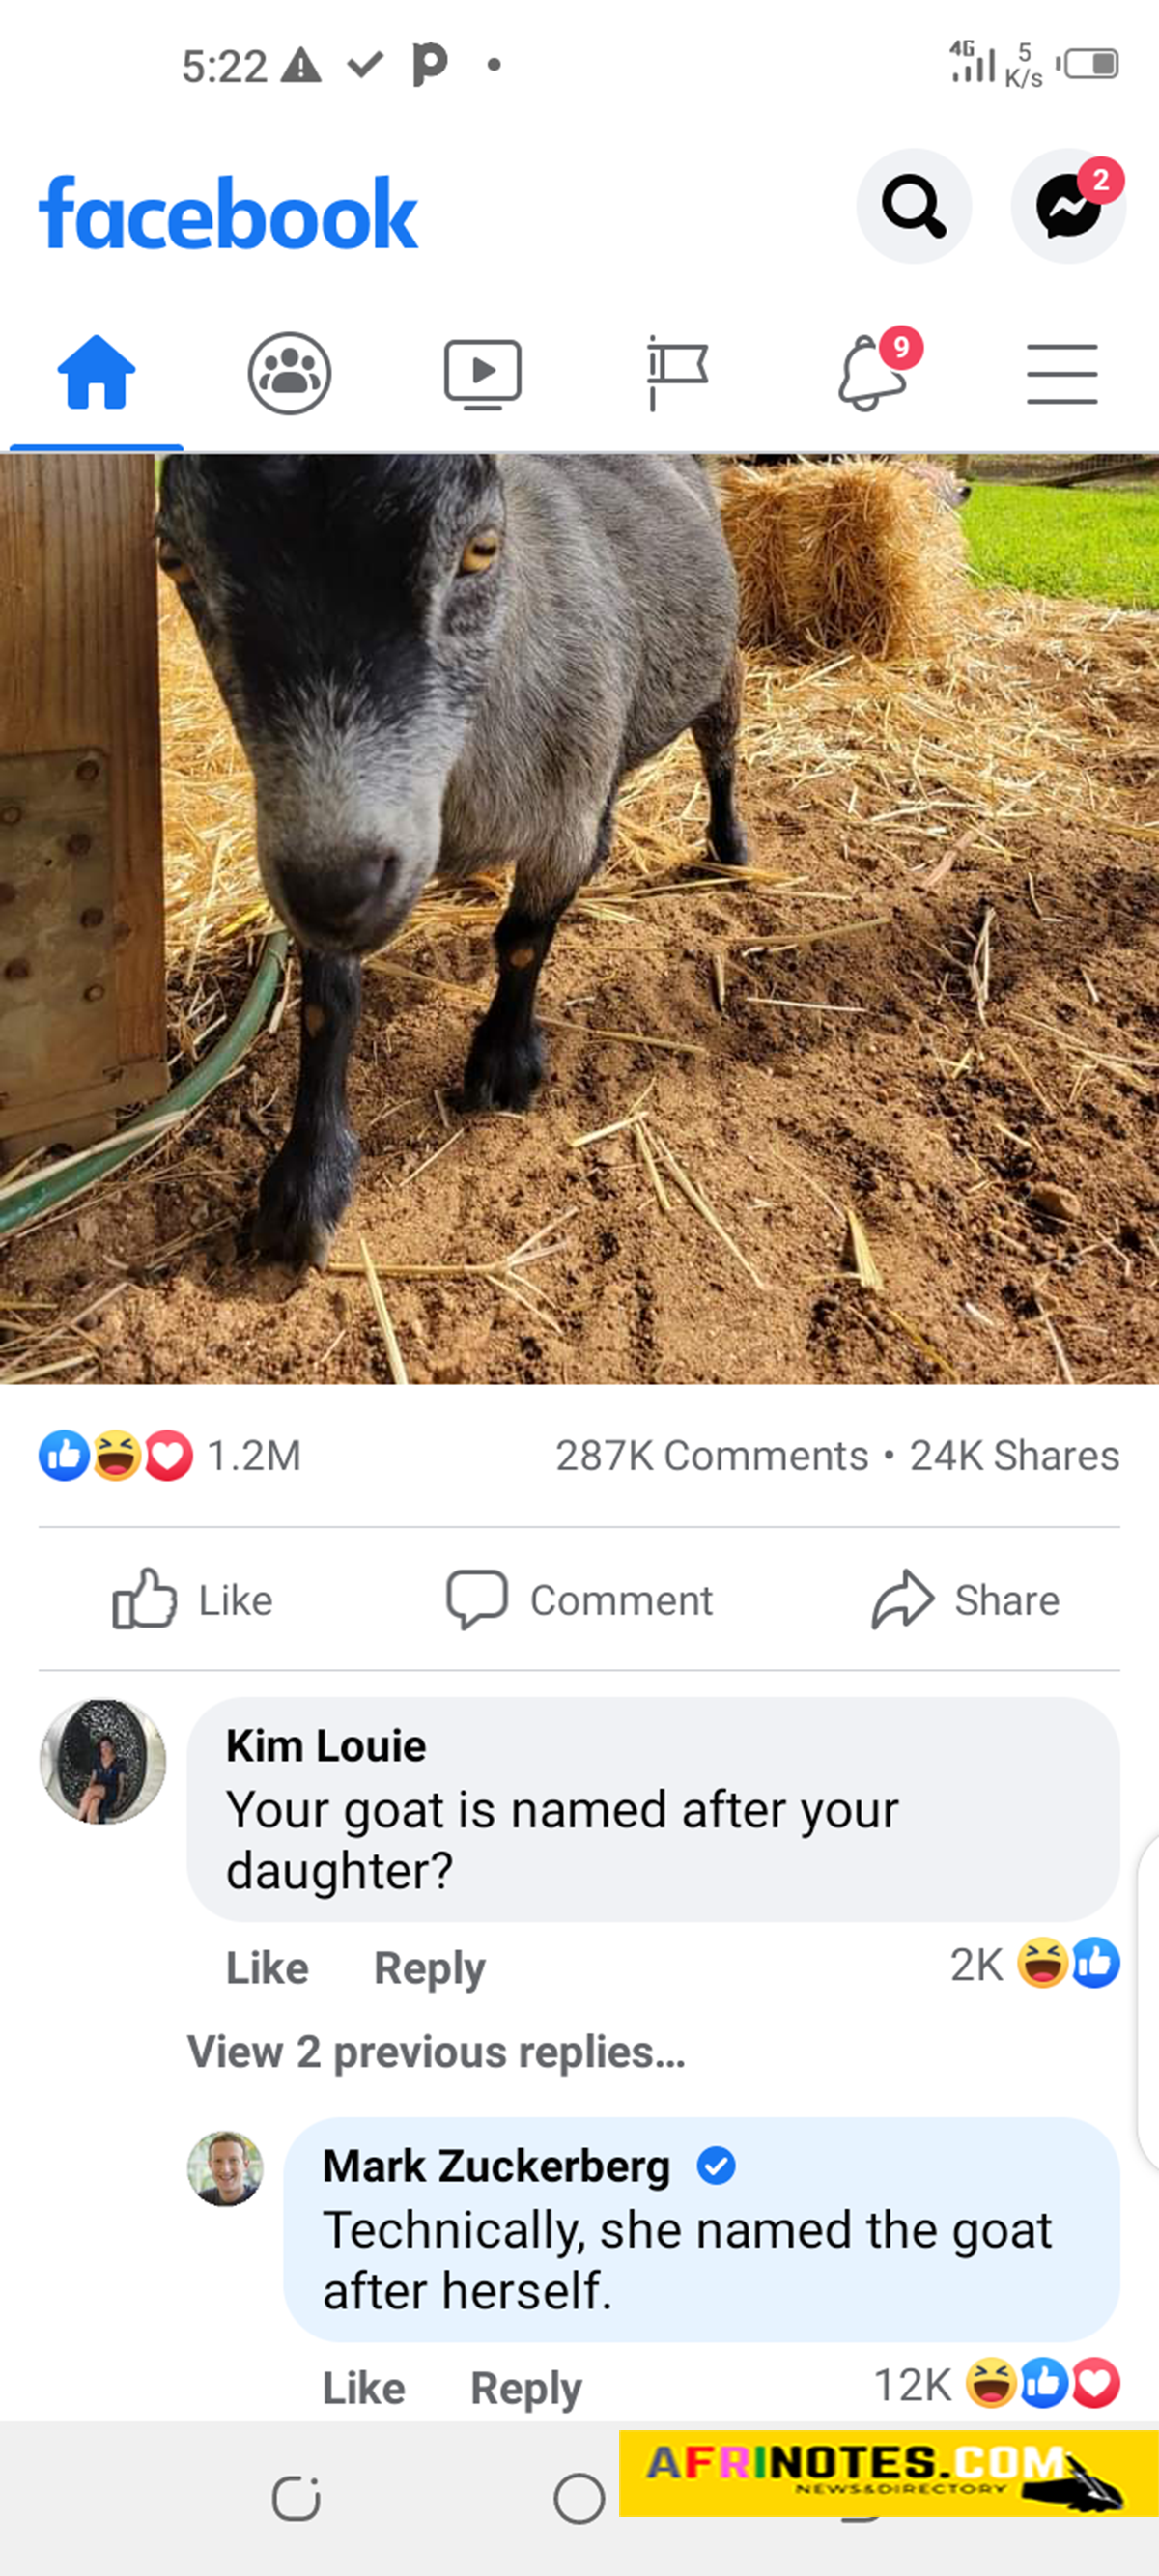 Technically,-she-named-the-goat-after-herself,-Mark-Zuckerberg